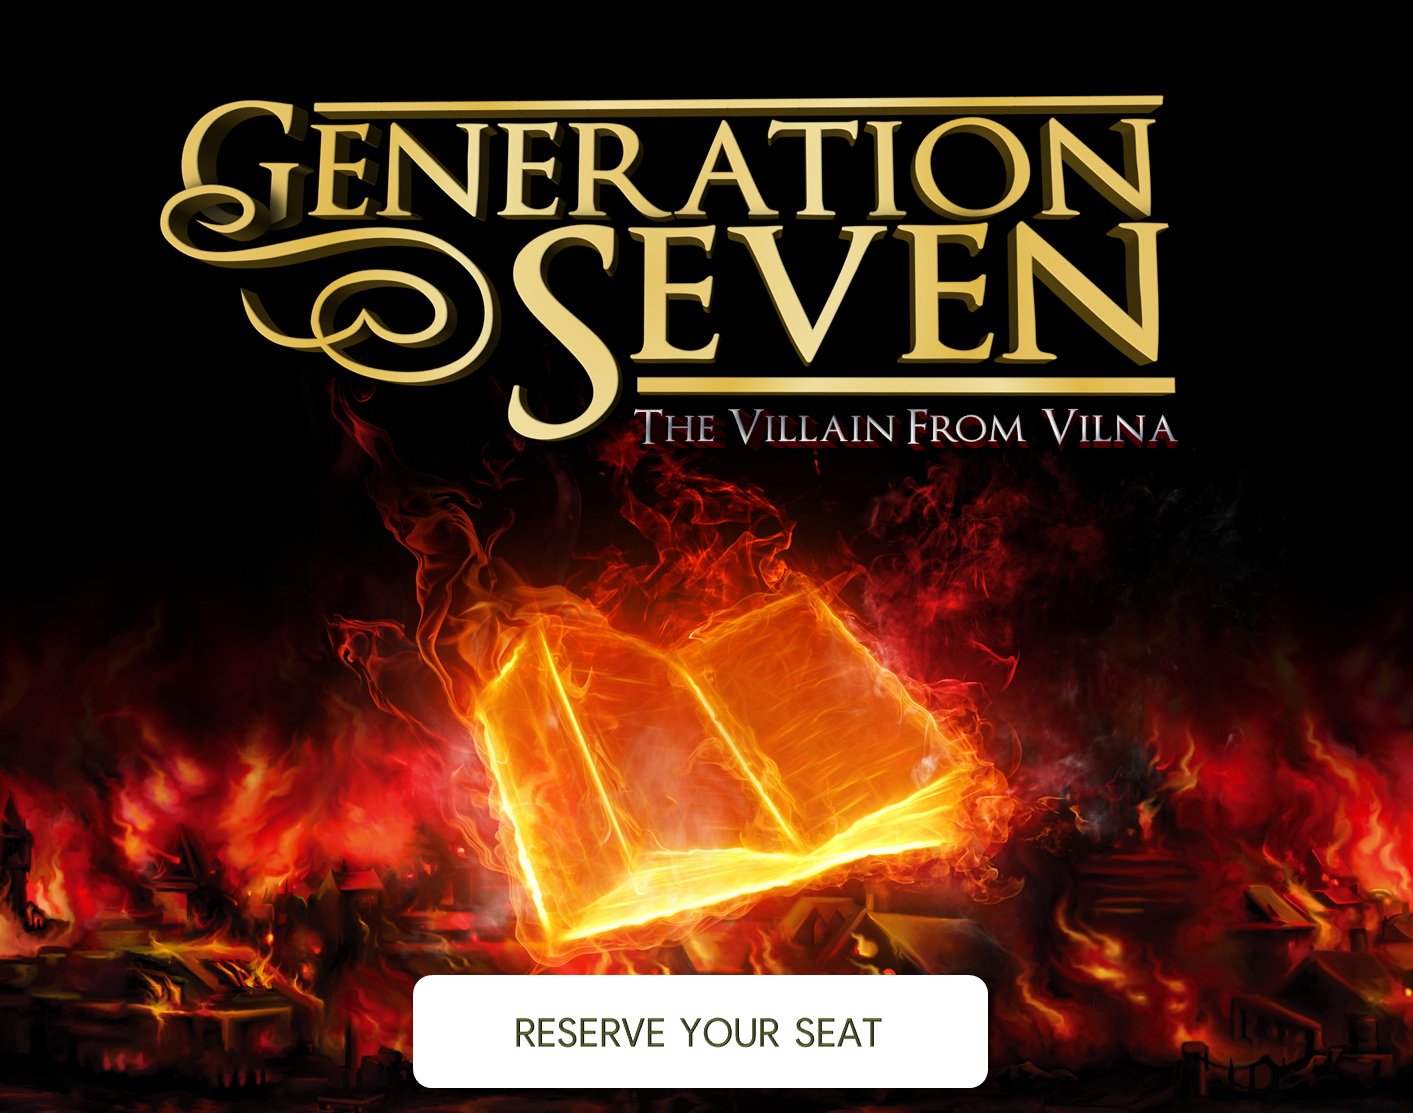 Click to reserve your seat for Generation Seven